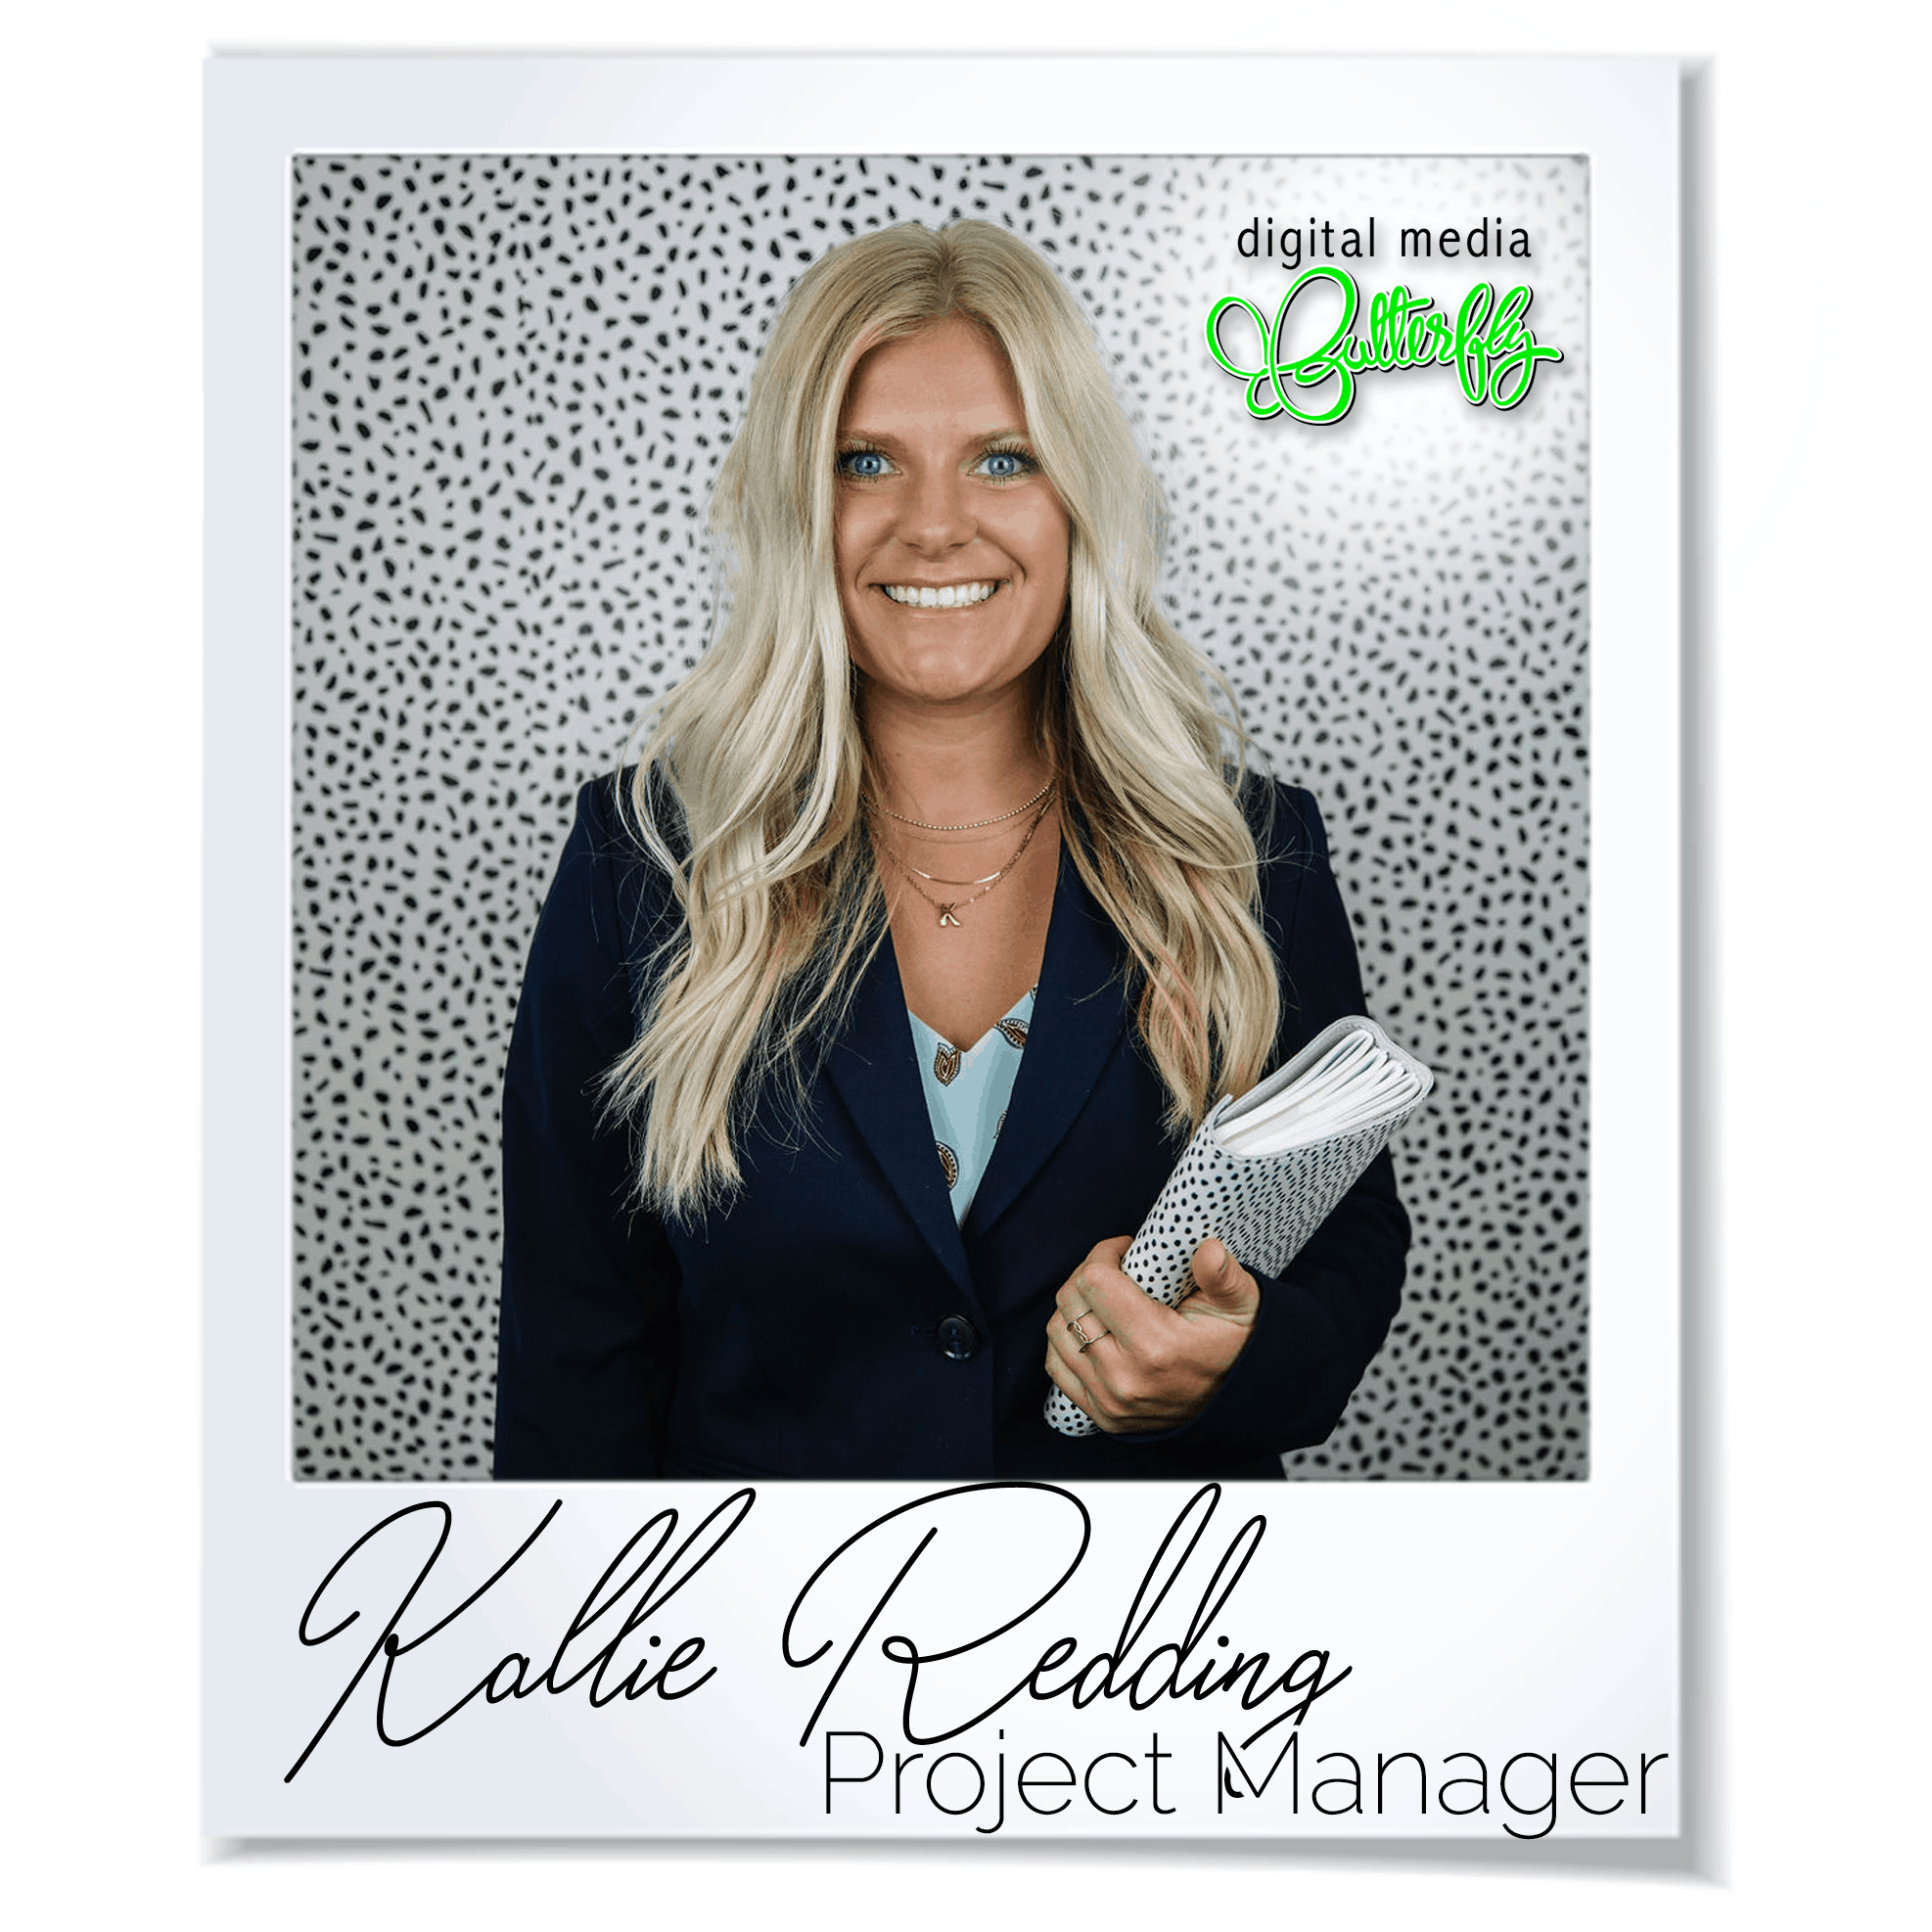 Kallie-Redding-Digital-Media-Butterfly-Marketing-Agency-Project-Manager